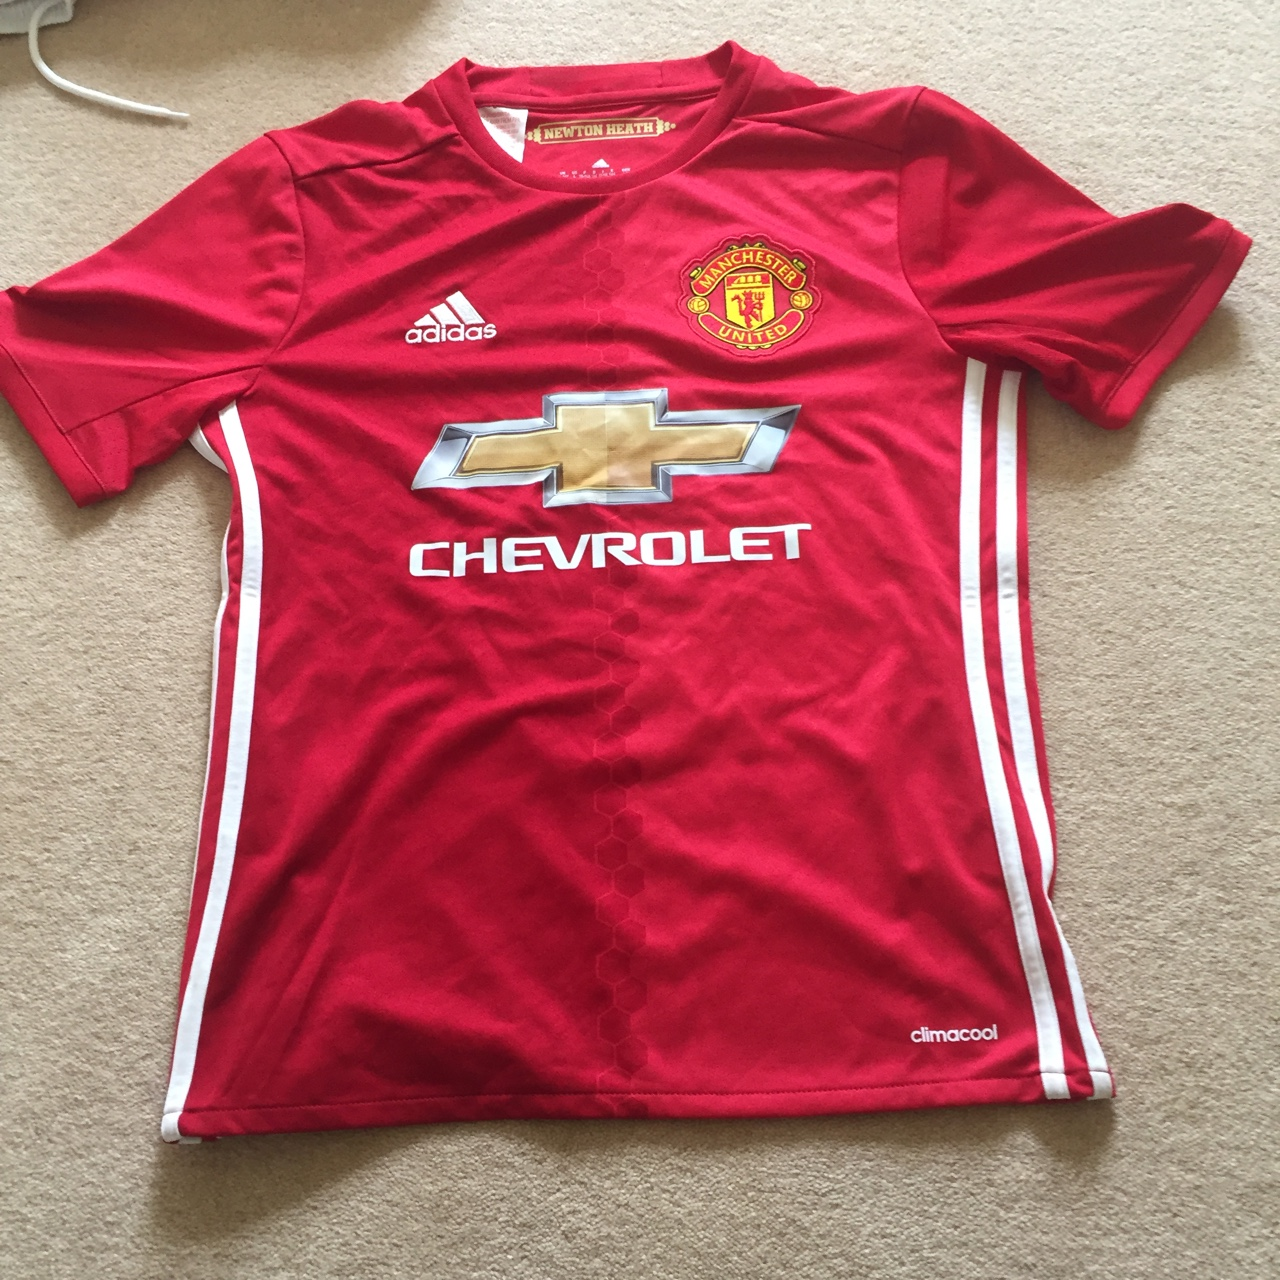 sale retailer d7b12 fd24d Full 2017 Manchester United kit with two shirts. ... - Depop